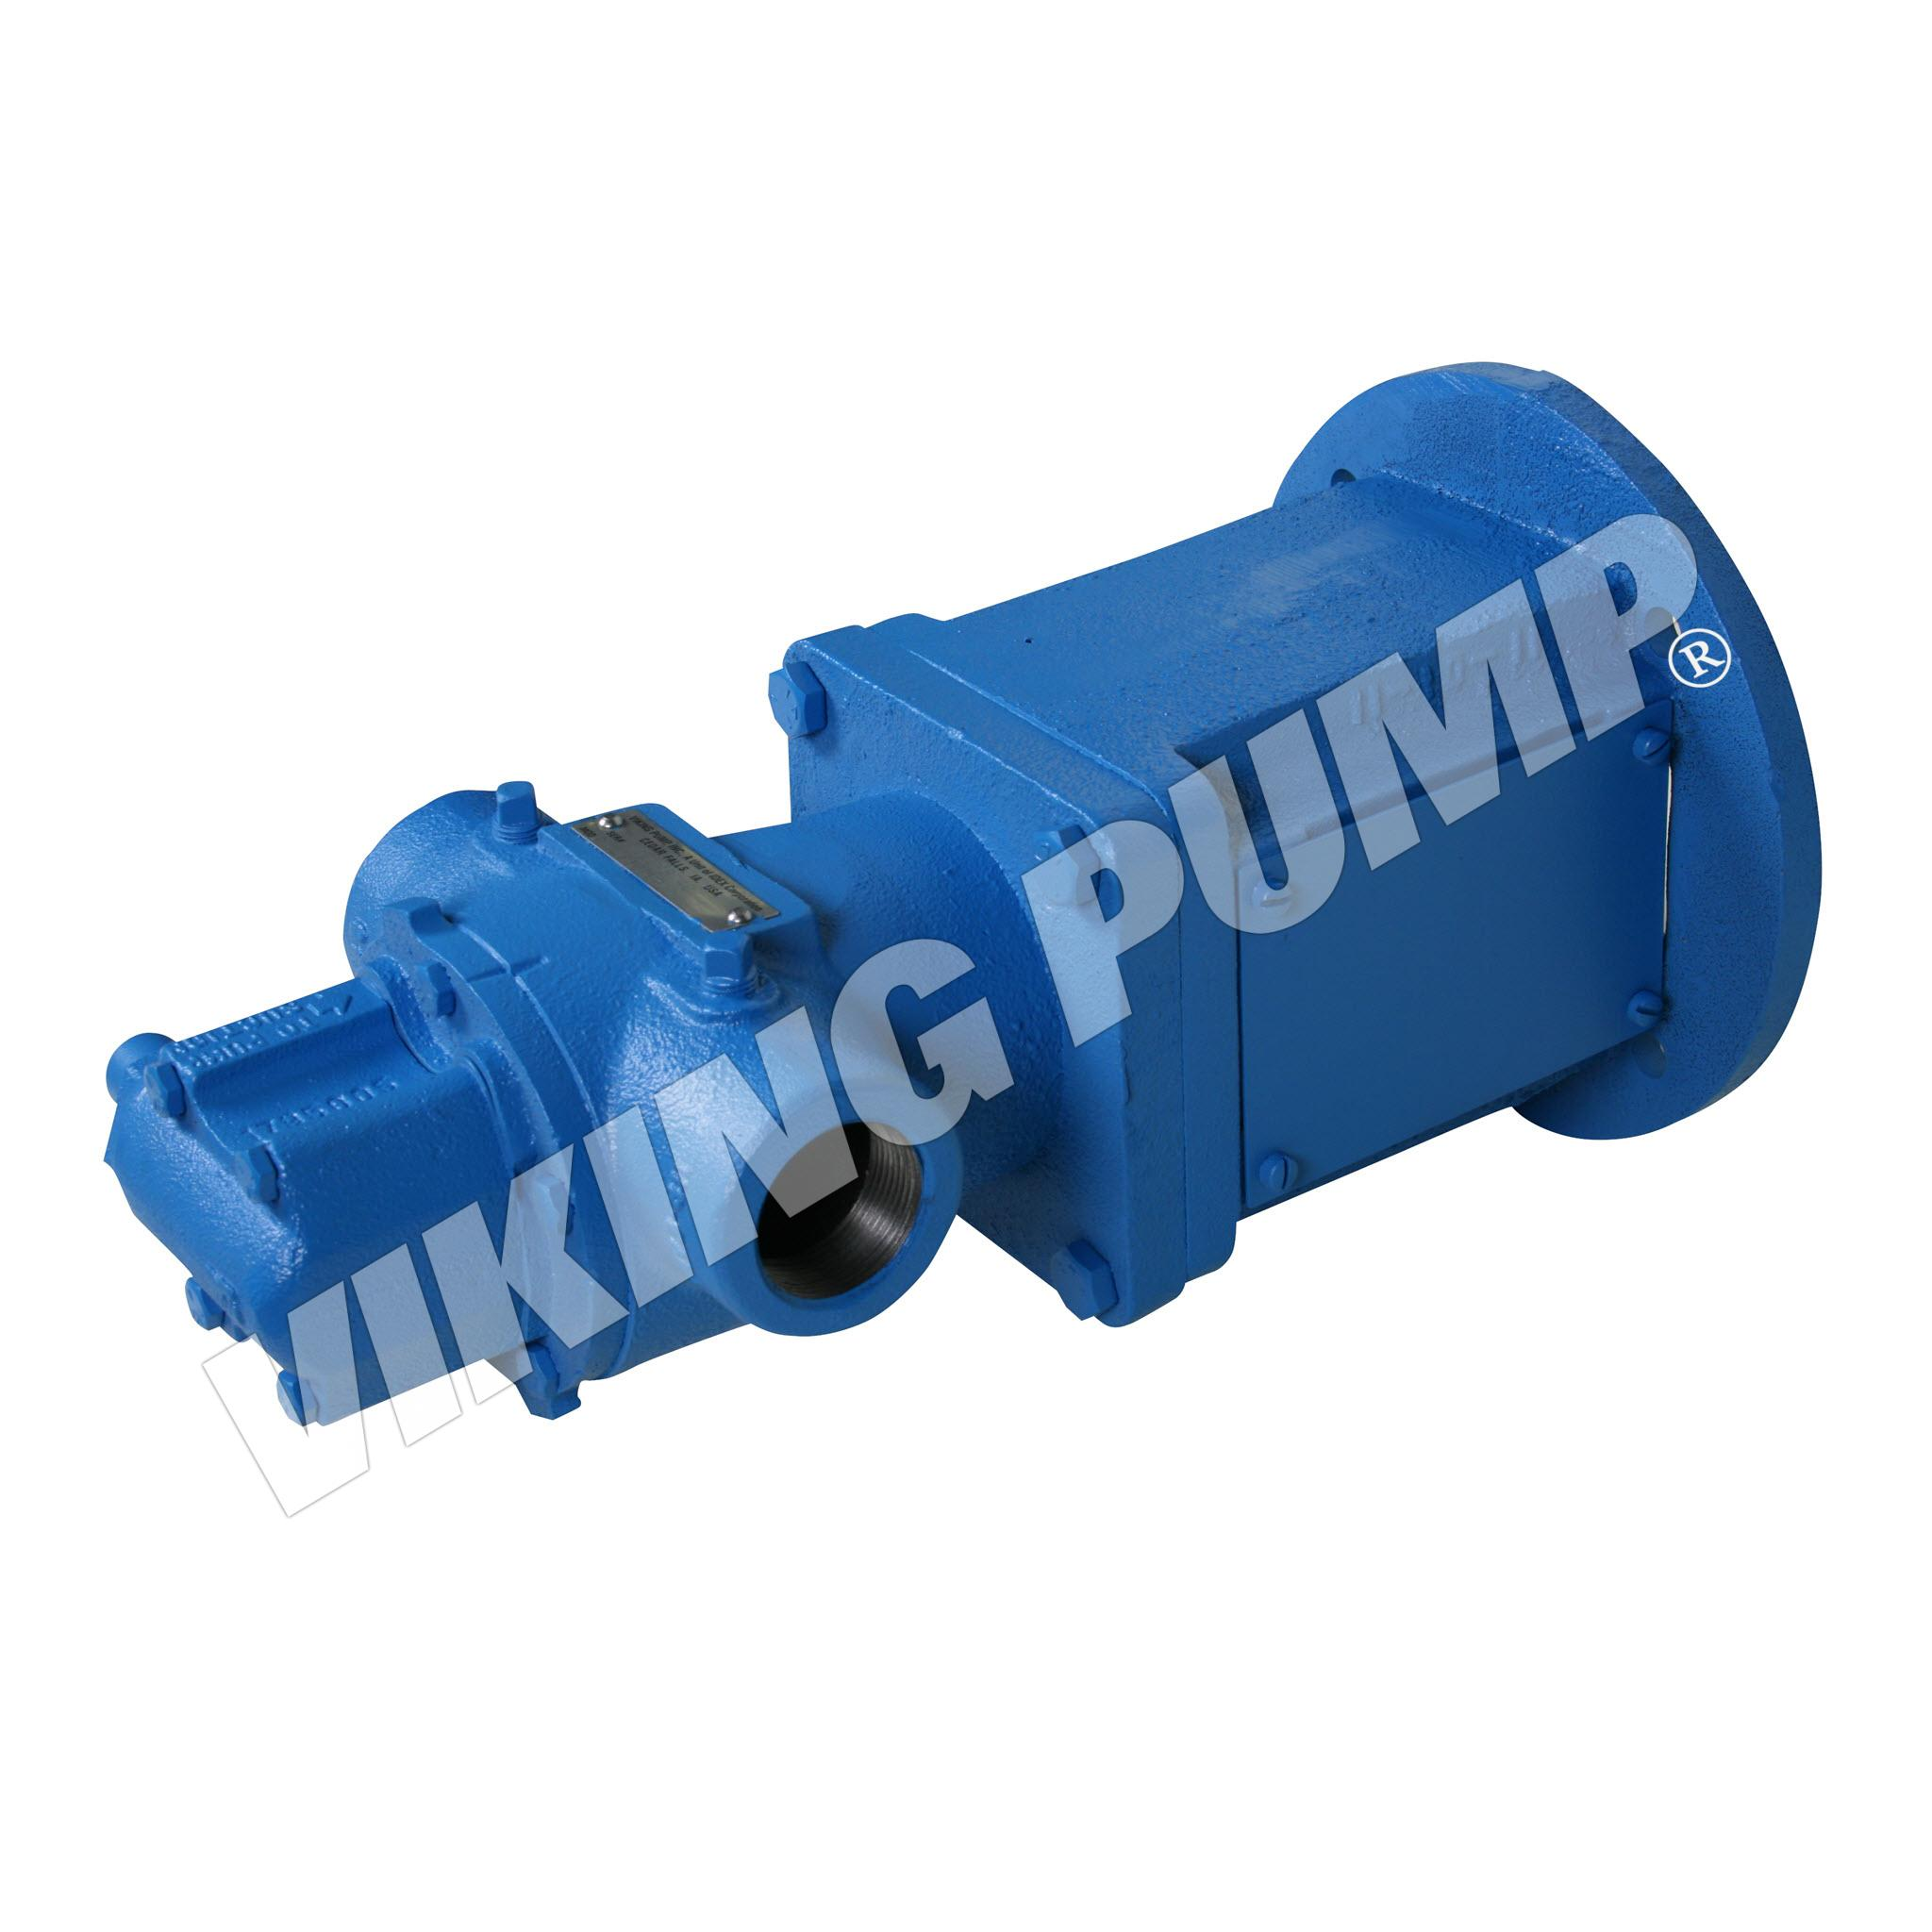 Model HJ495, Mechanical Seal, Relief Valve Pump with M-Drive Bracket